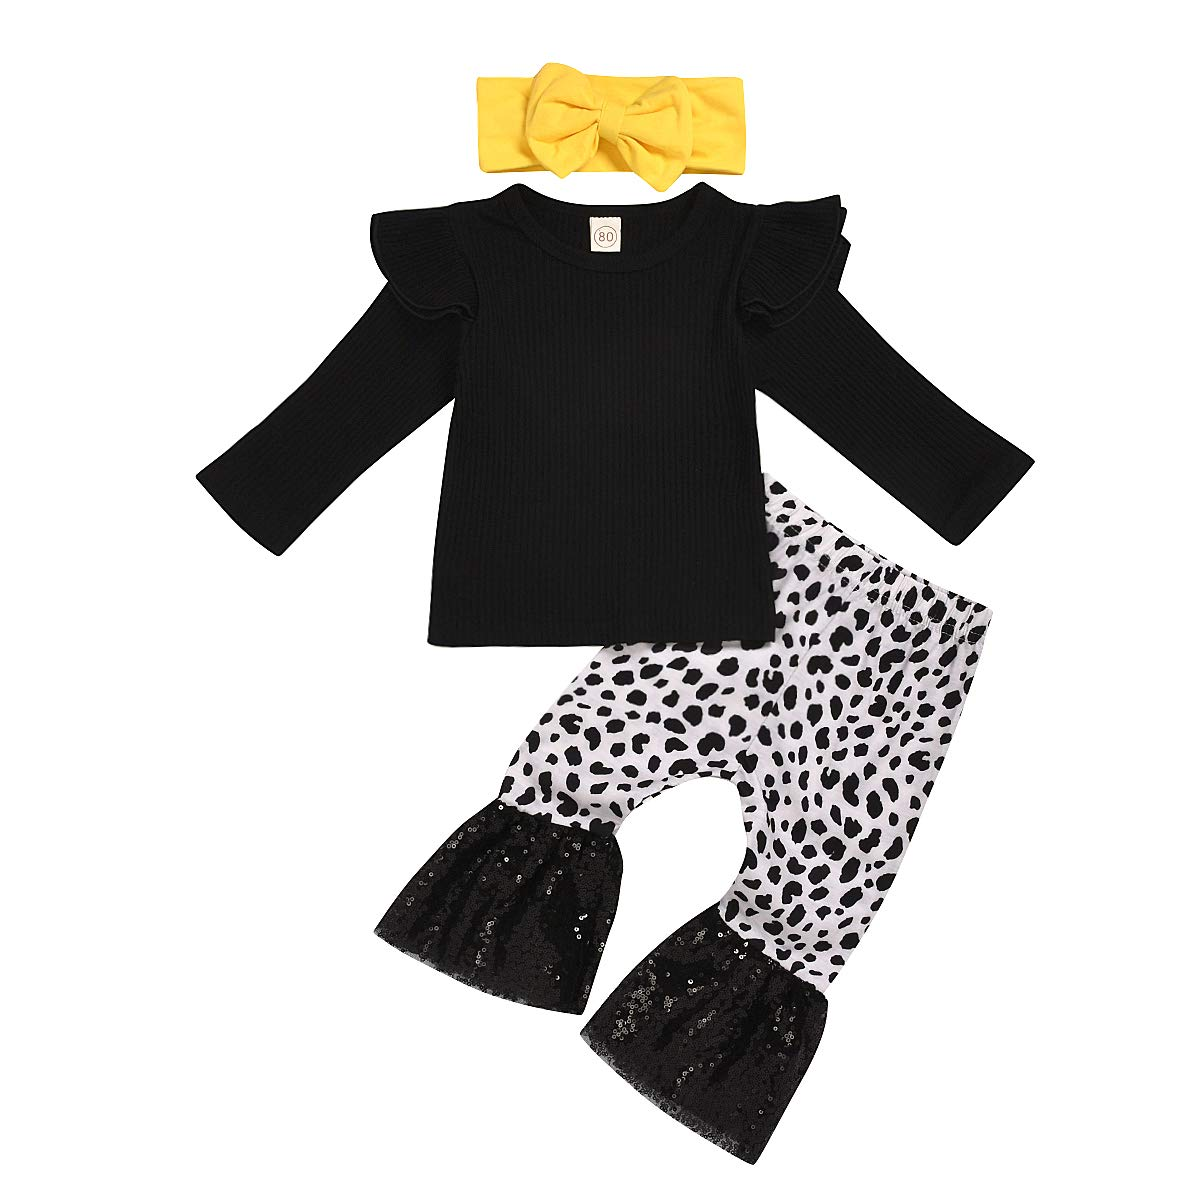 Baby Girl Ruffles Pants Sets Toddler Long Sleeve T-Shirt + Leopard Print Lace Bell-Bottom Pants with Bow Headband Outfits